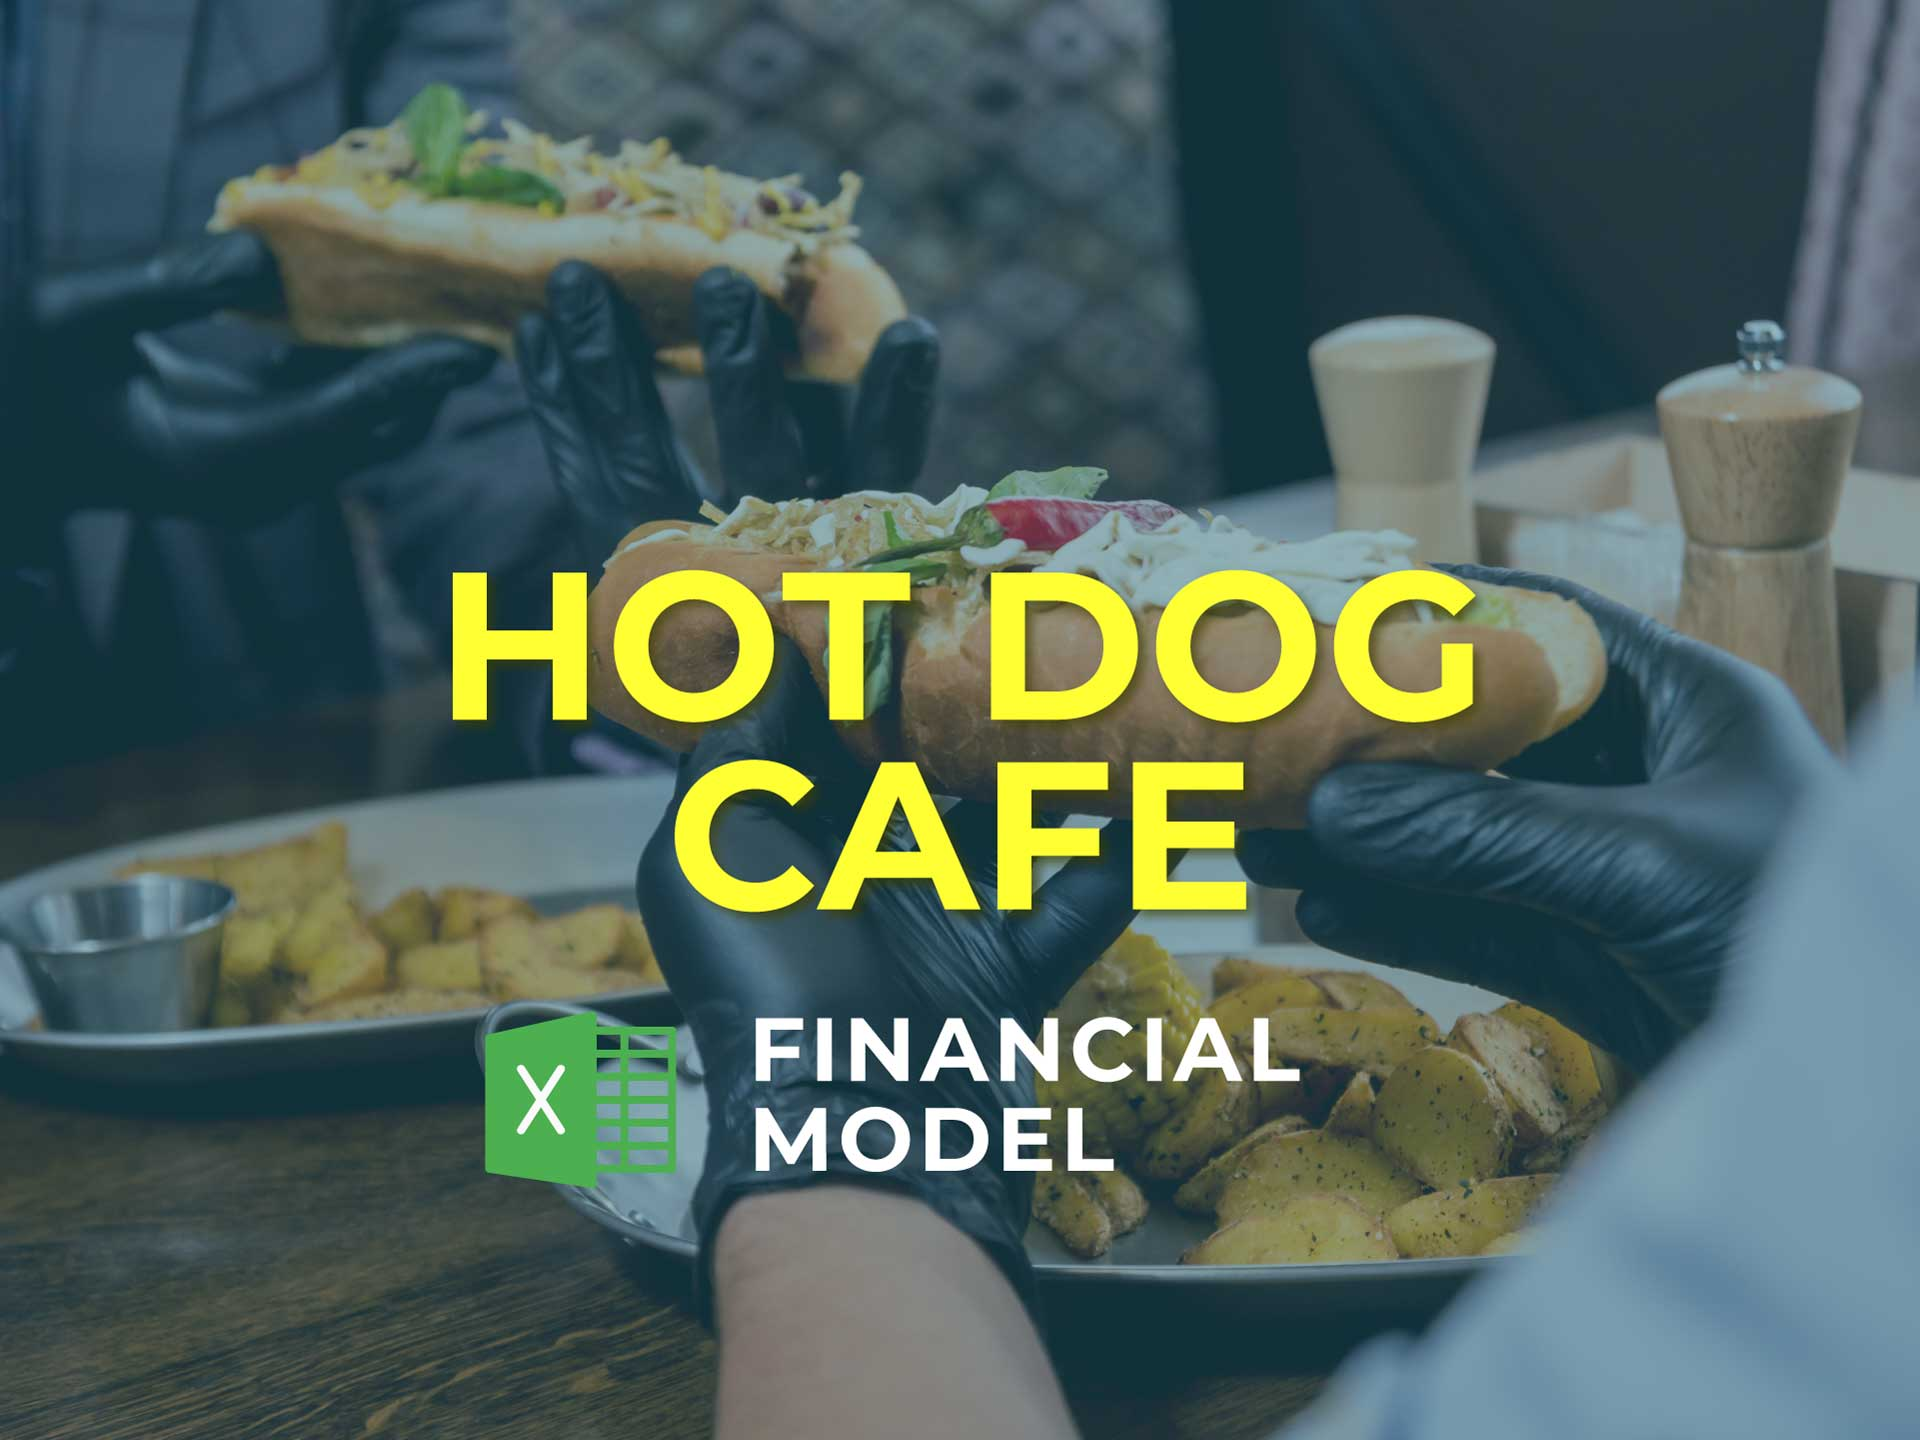 Hot Dog Cafe